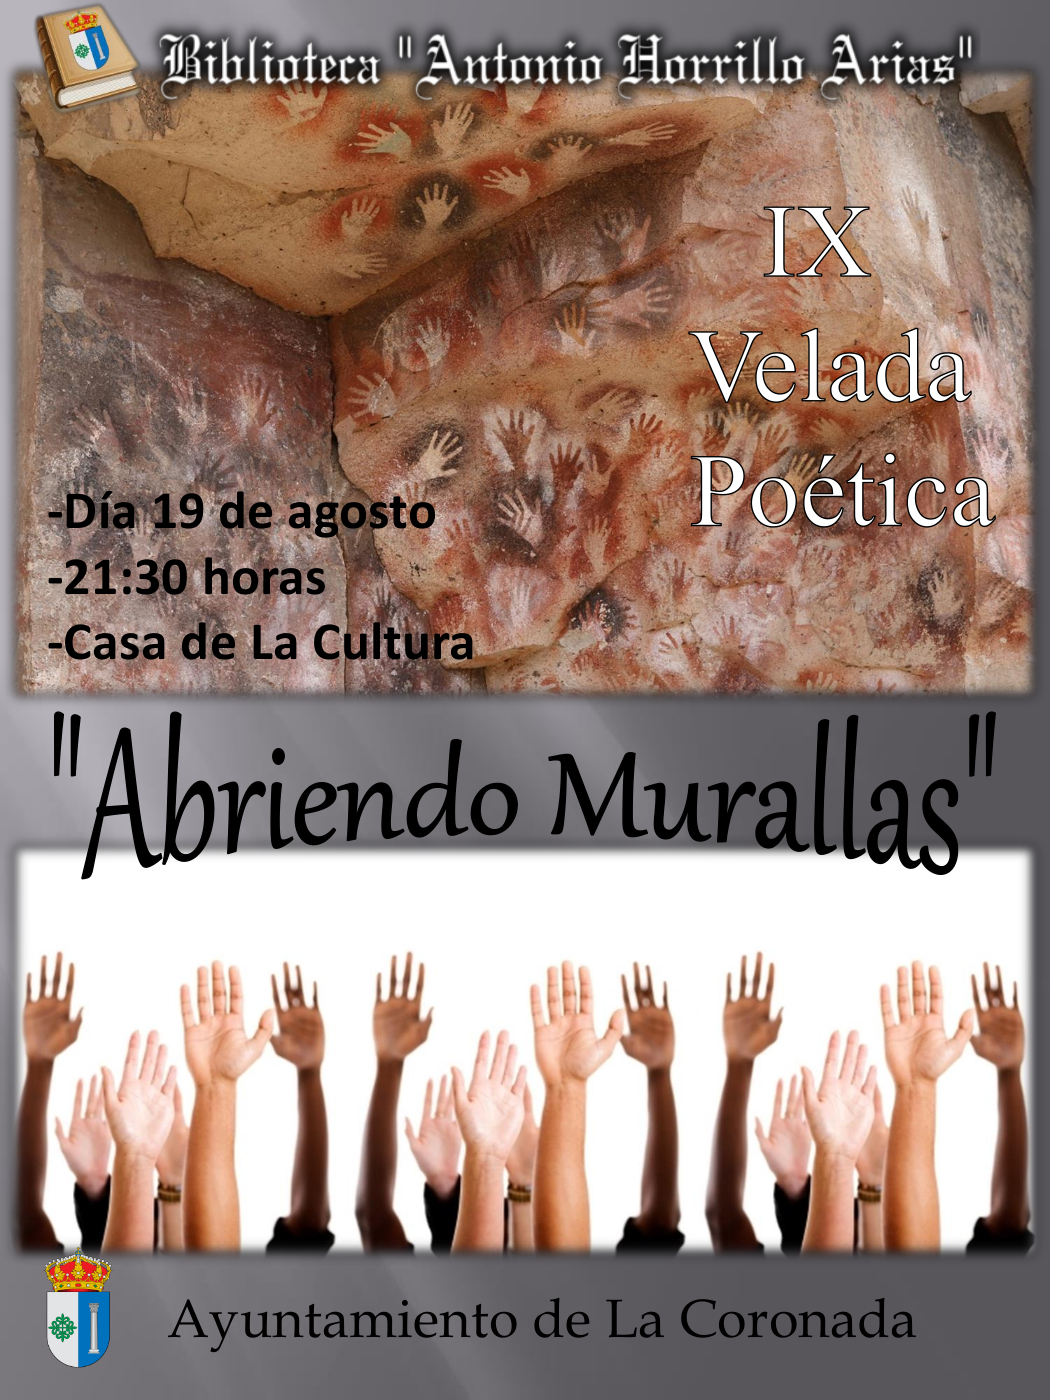 images/stories/cartel ix velada.jpg